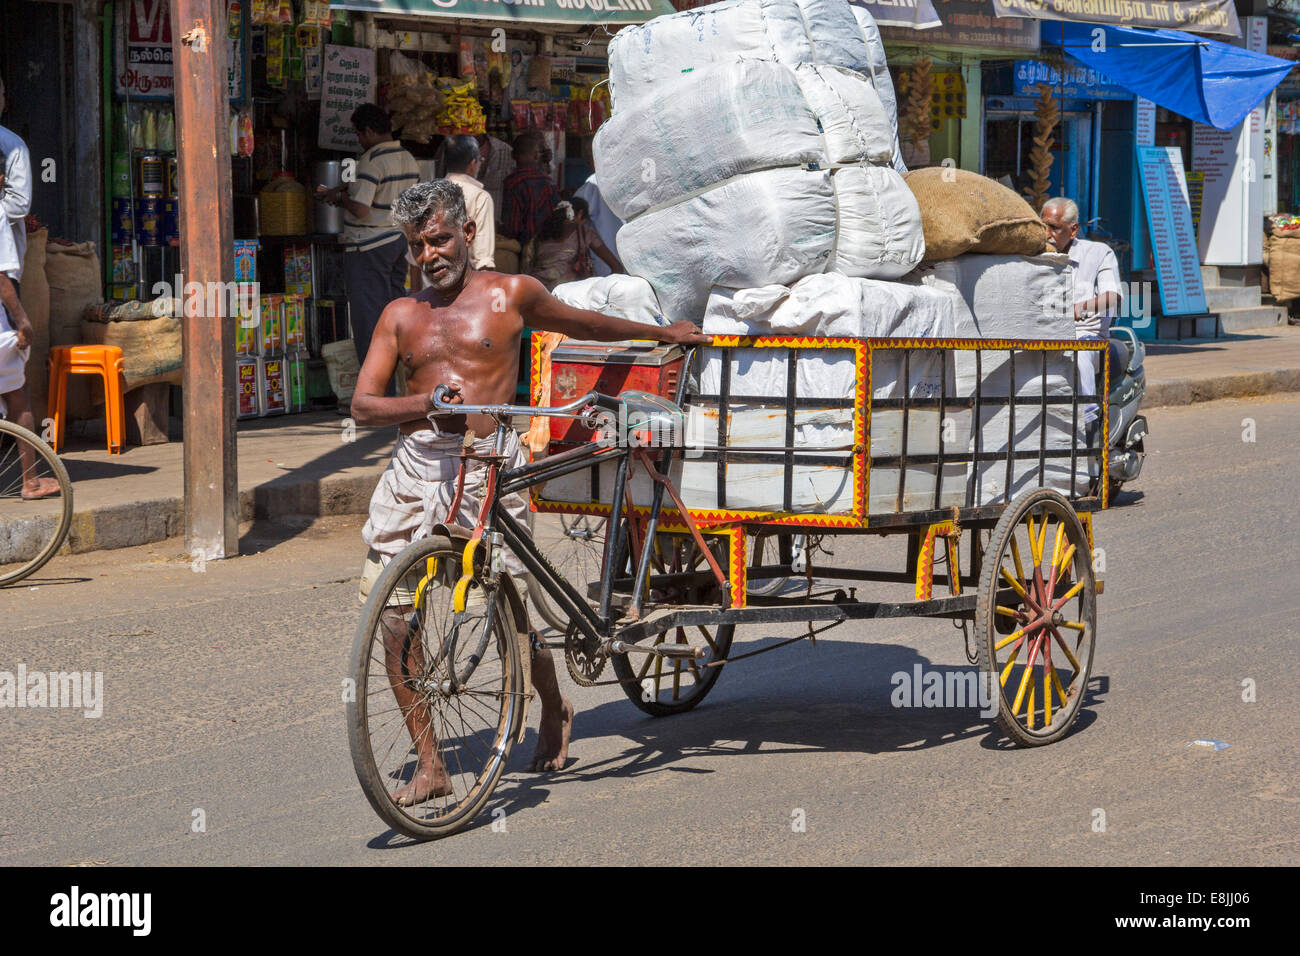 RICKSHAW DRIVER WALKING WITH A LOAD OF MANY HEAVY SACKS IN INDIA - Stock Image